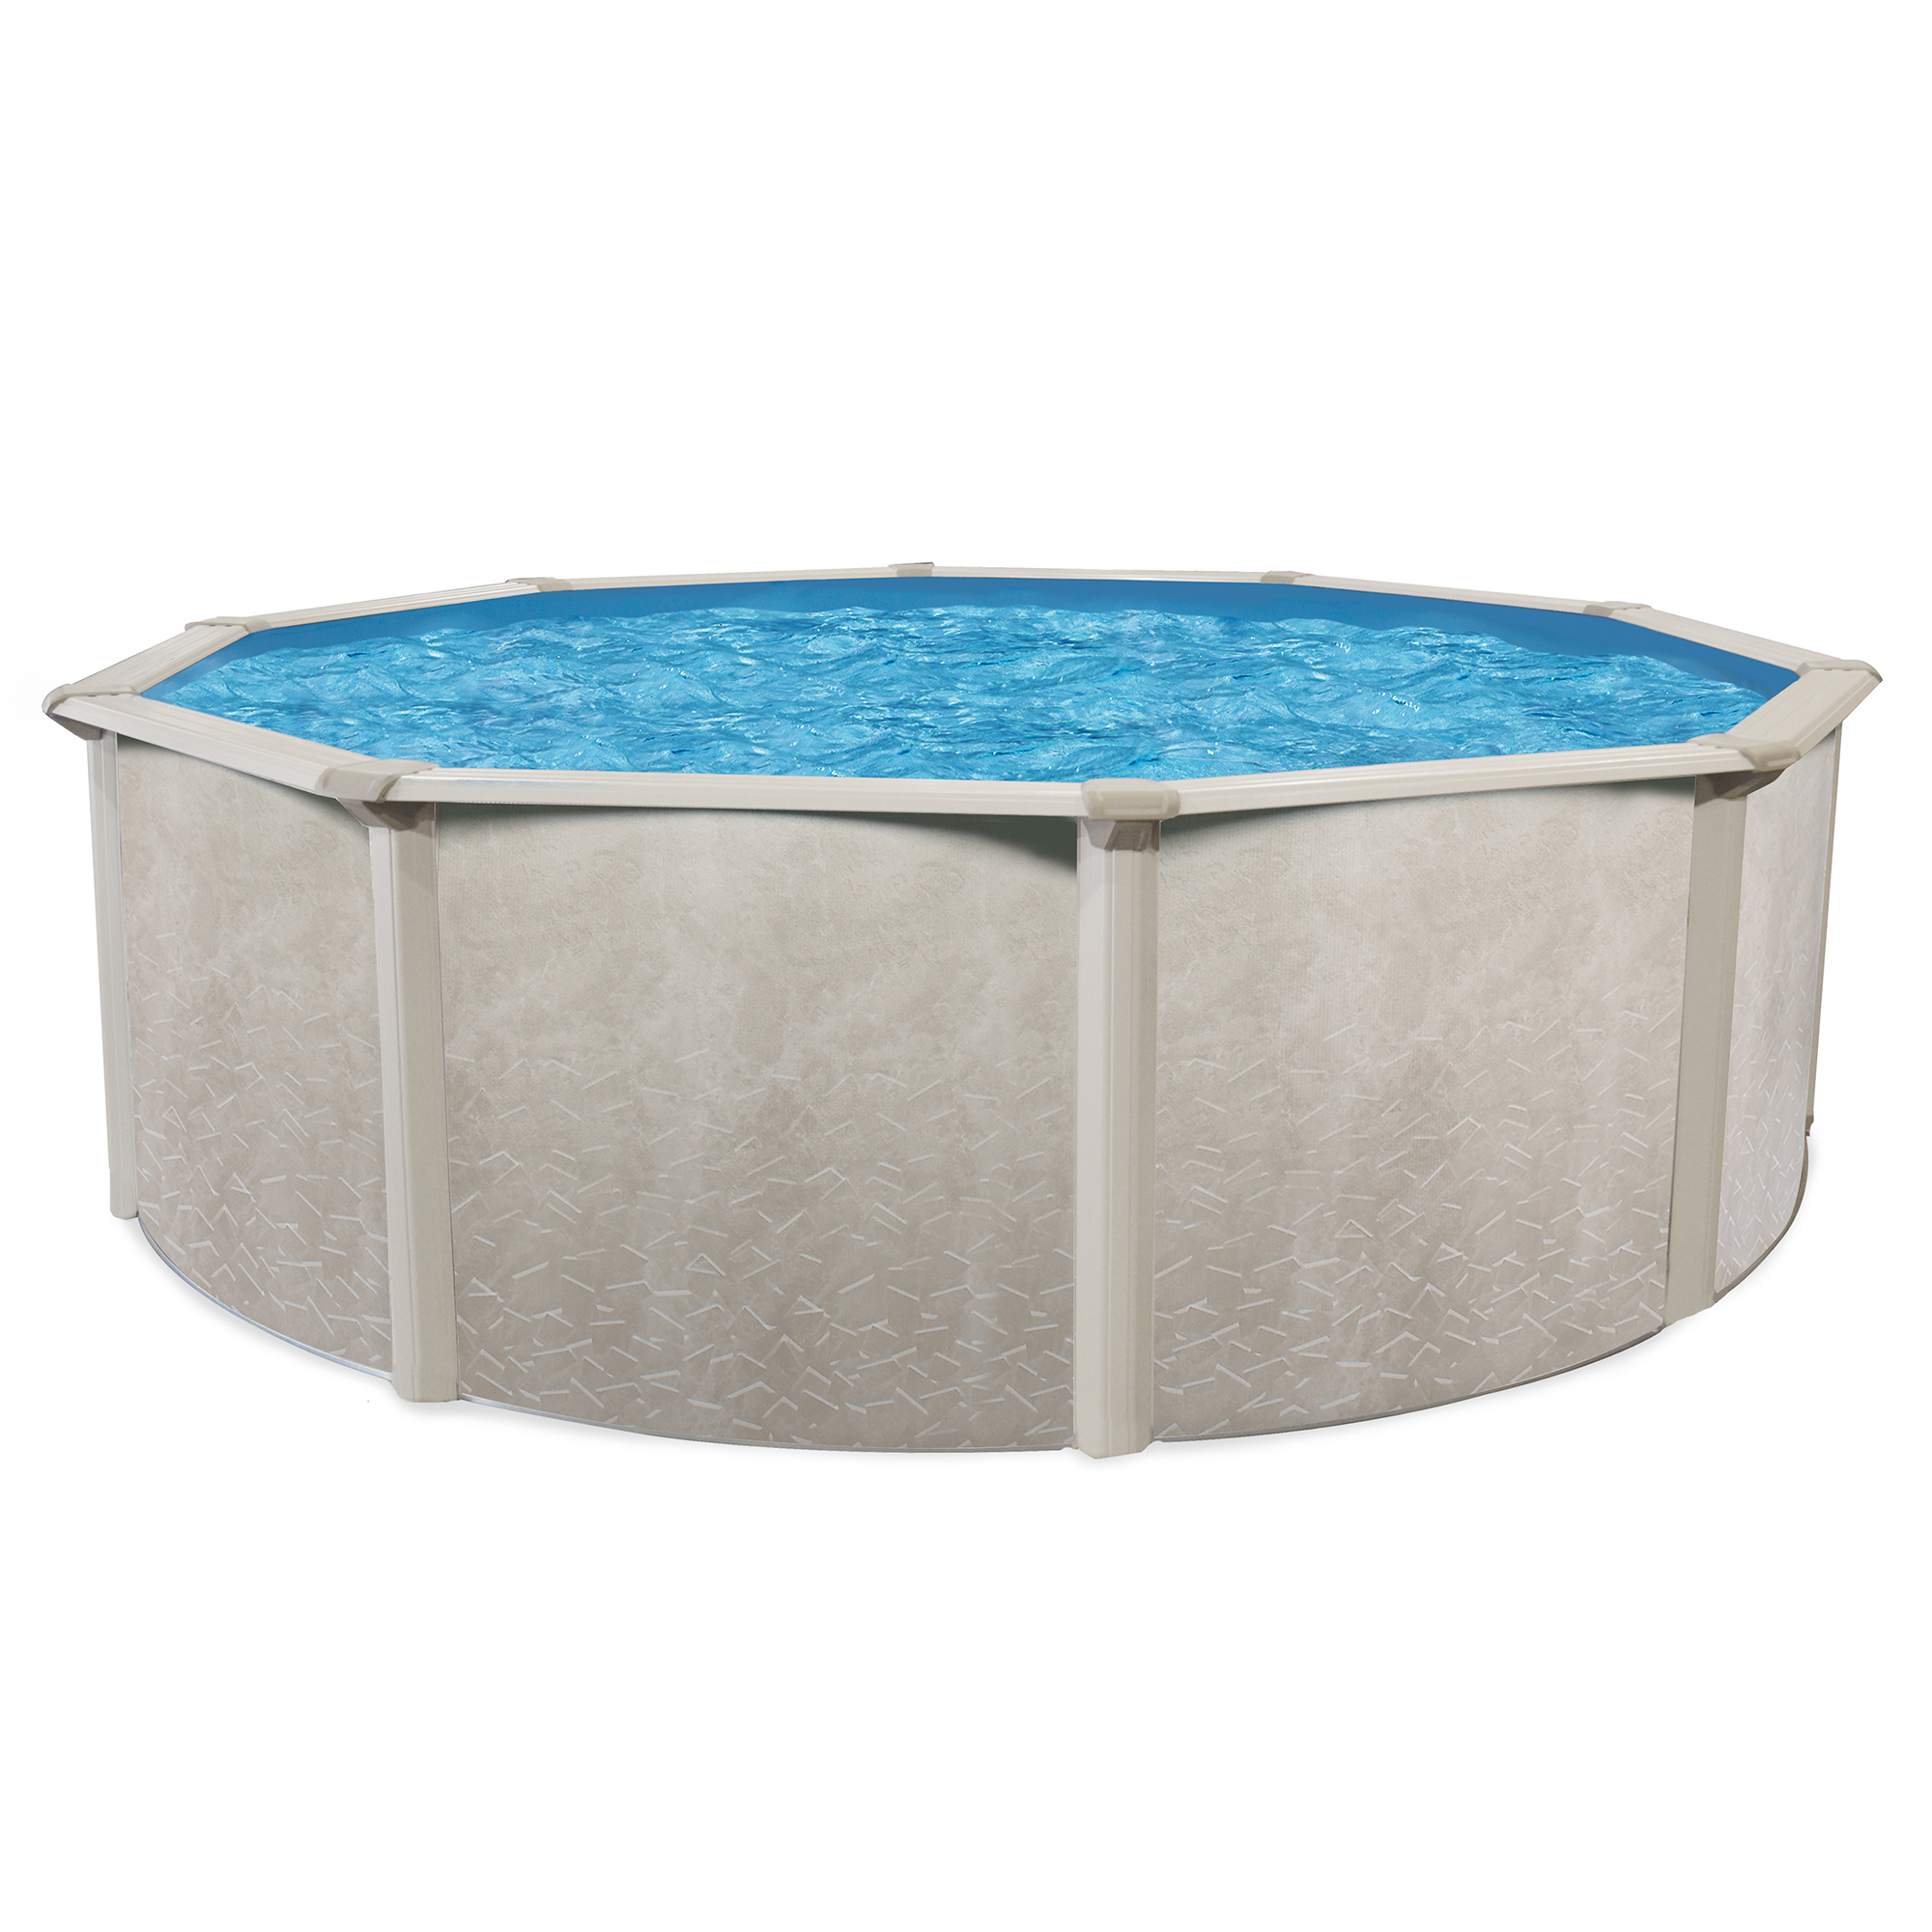 "Phoenix 24' x 52"" Round Steel Frame Design Above Ground Outdoor Swimming Pool by Cornelius"